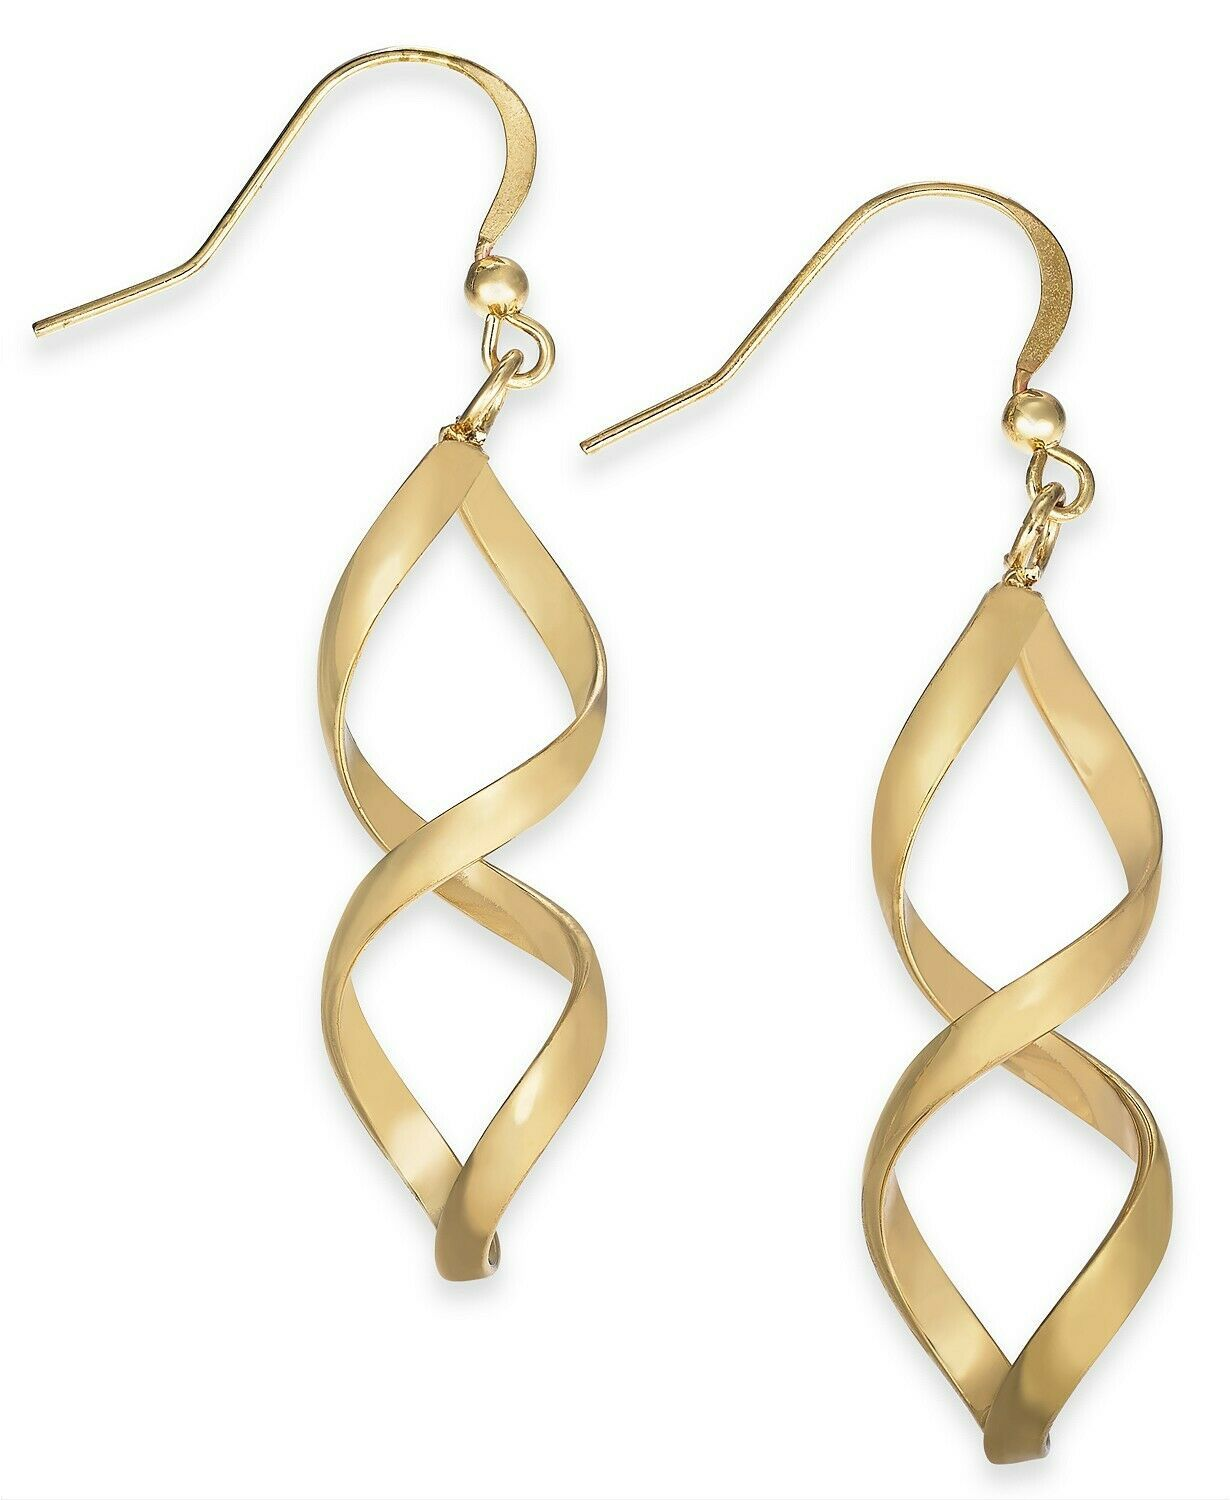 Primary image for Charter Club Rose Gold-Tone Twist Drop Earrings Gold 1.75""